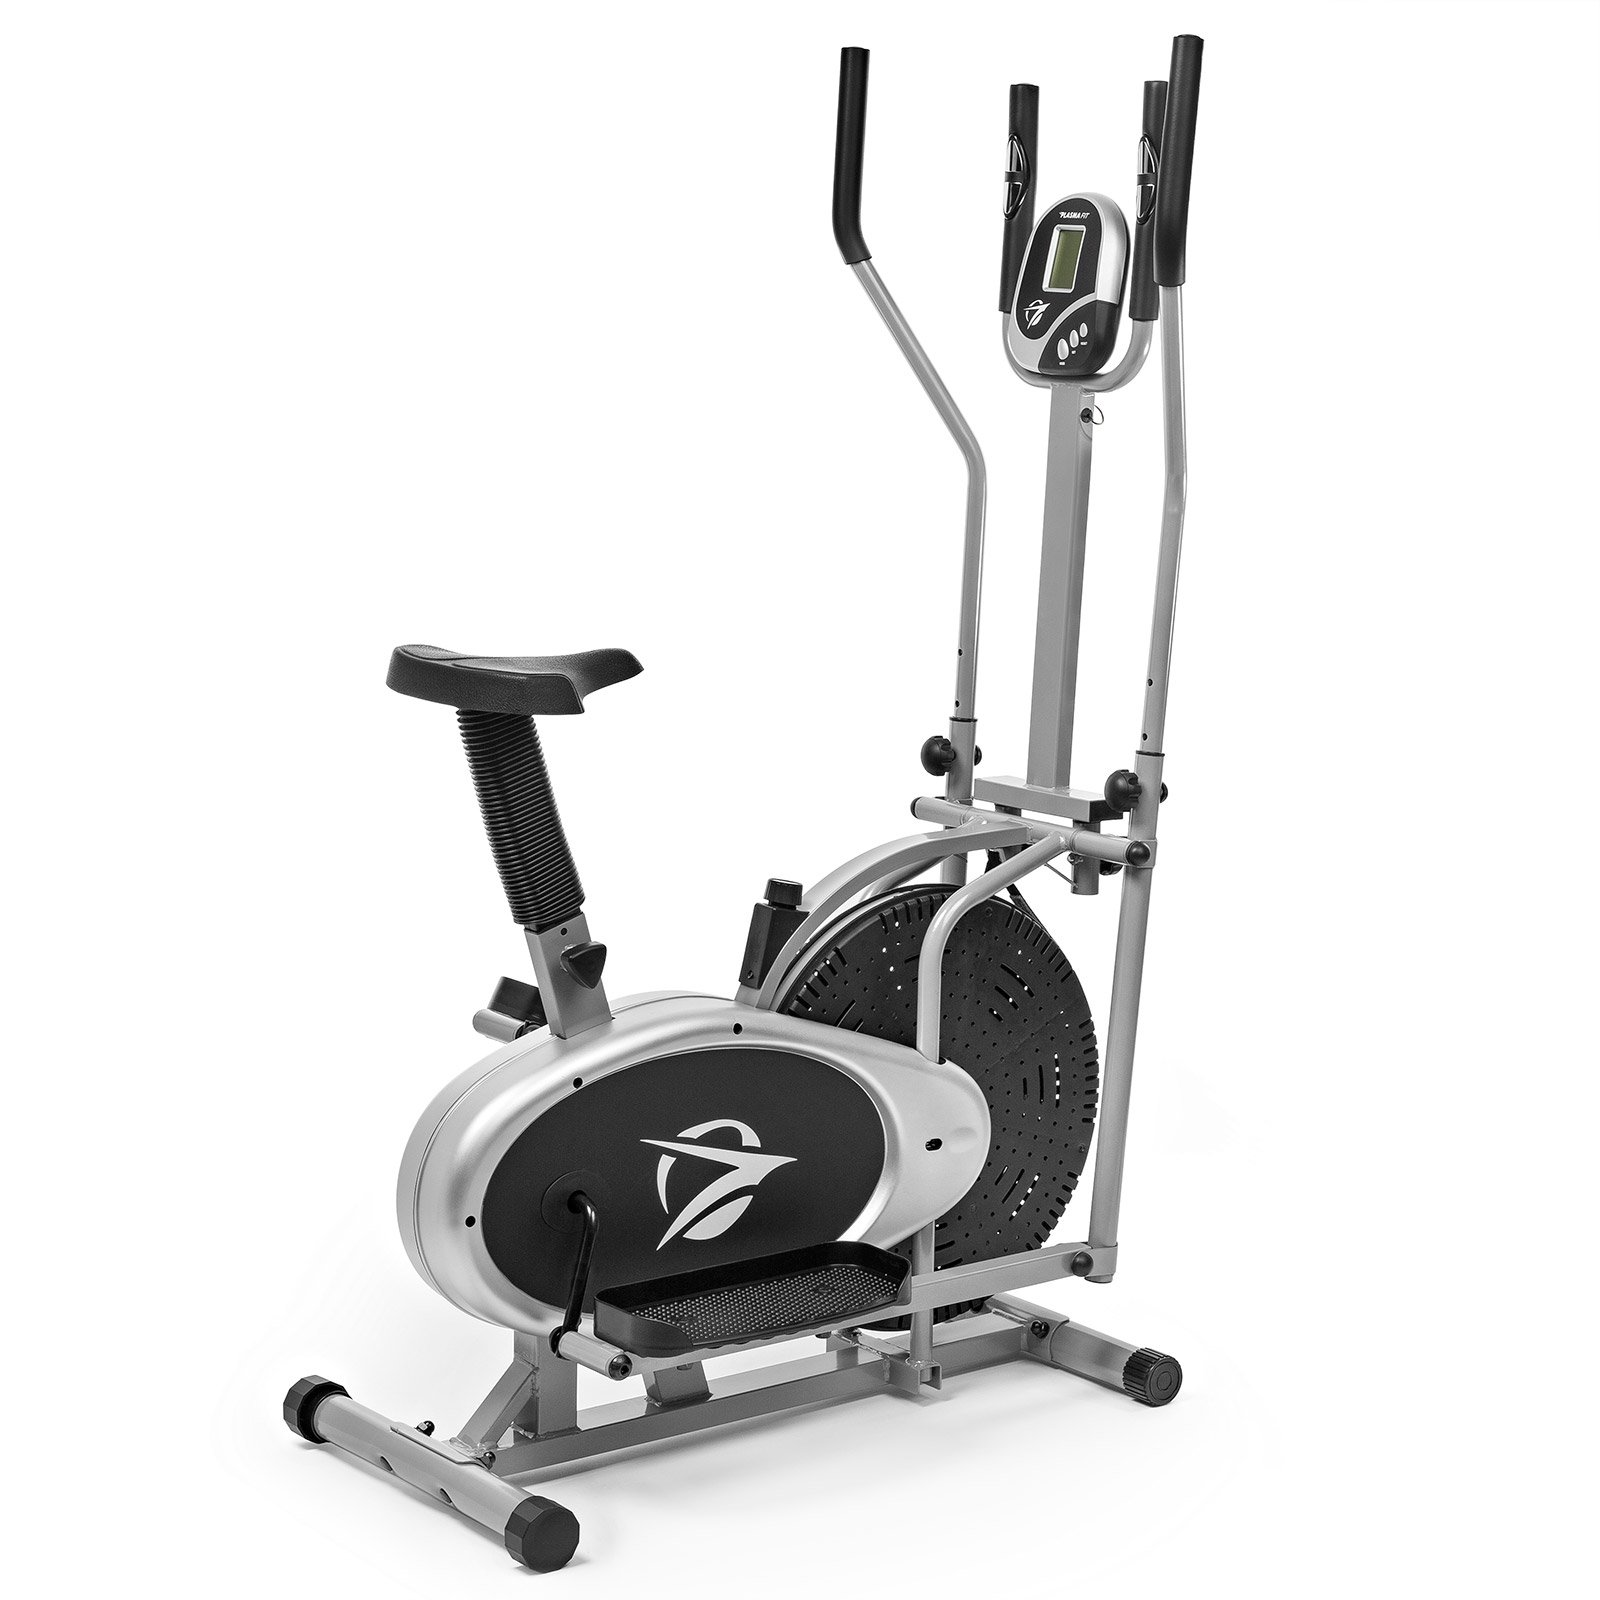 Plasma Fit Elliptical Machine Cross Trainer 2 in 1 Exercise Bike Cardio Fitness Home Gym Equipment by Plasma Fit